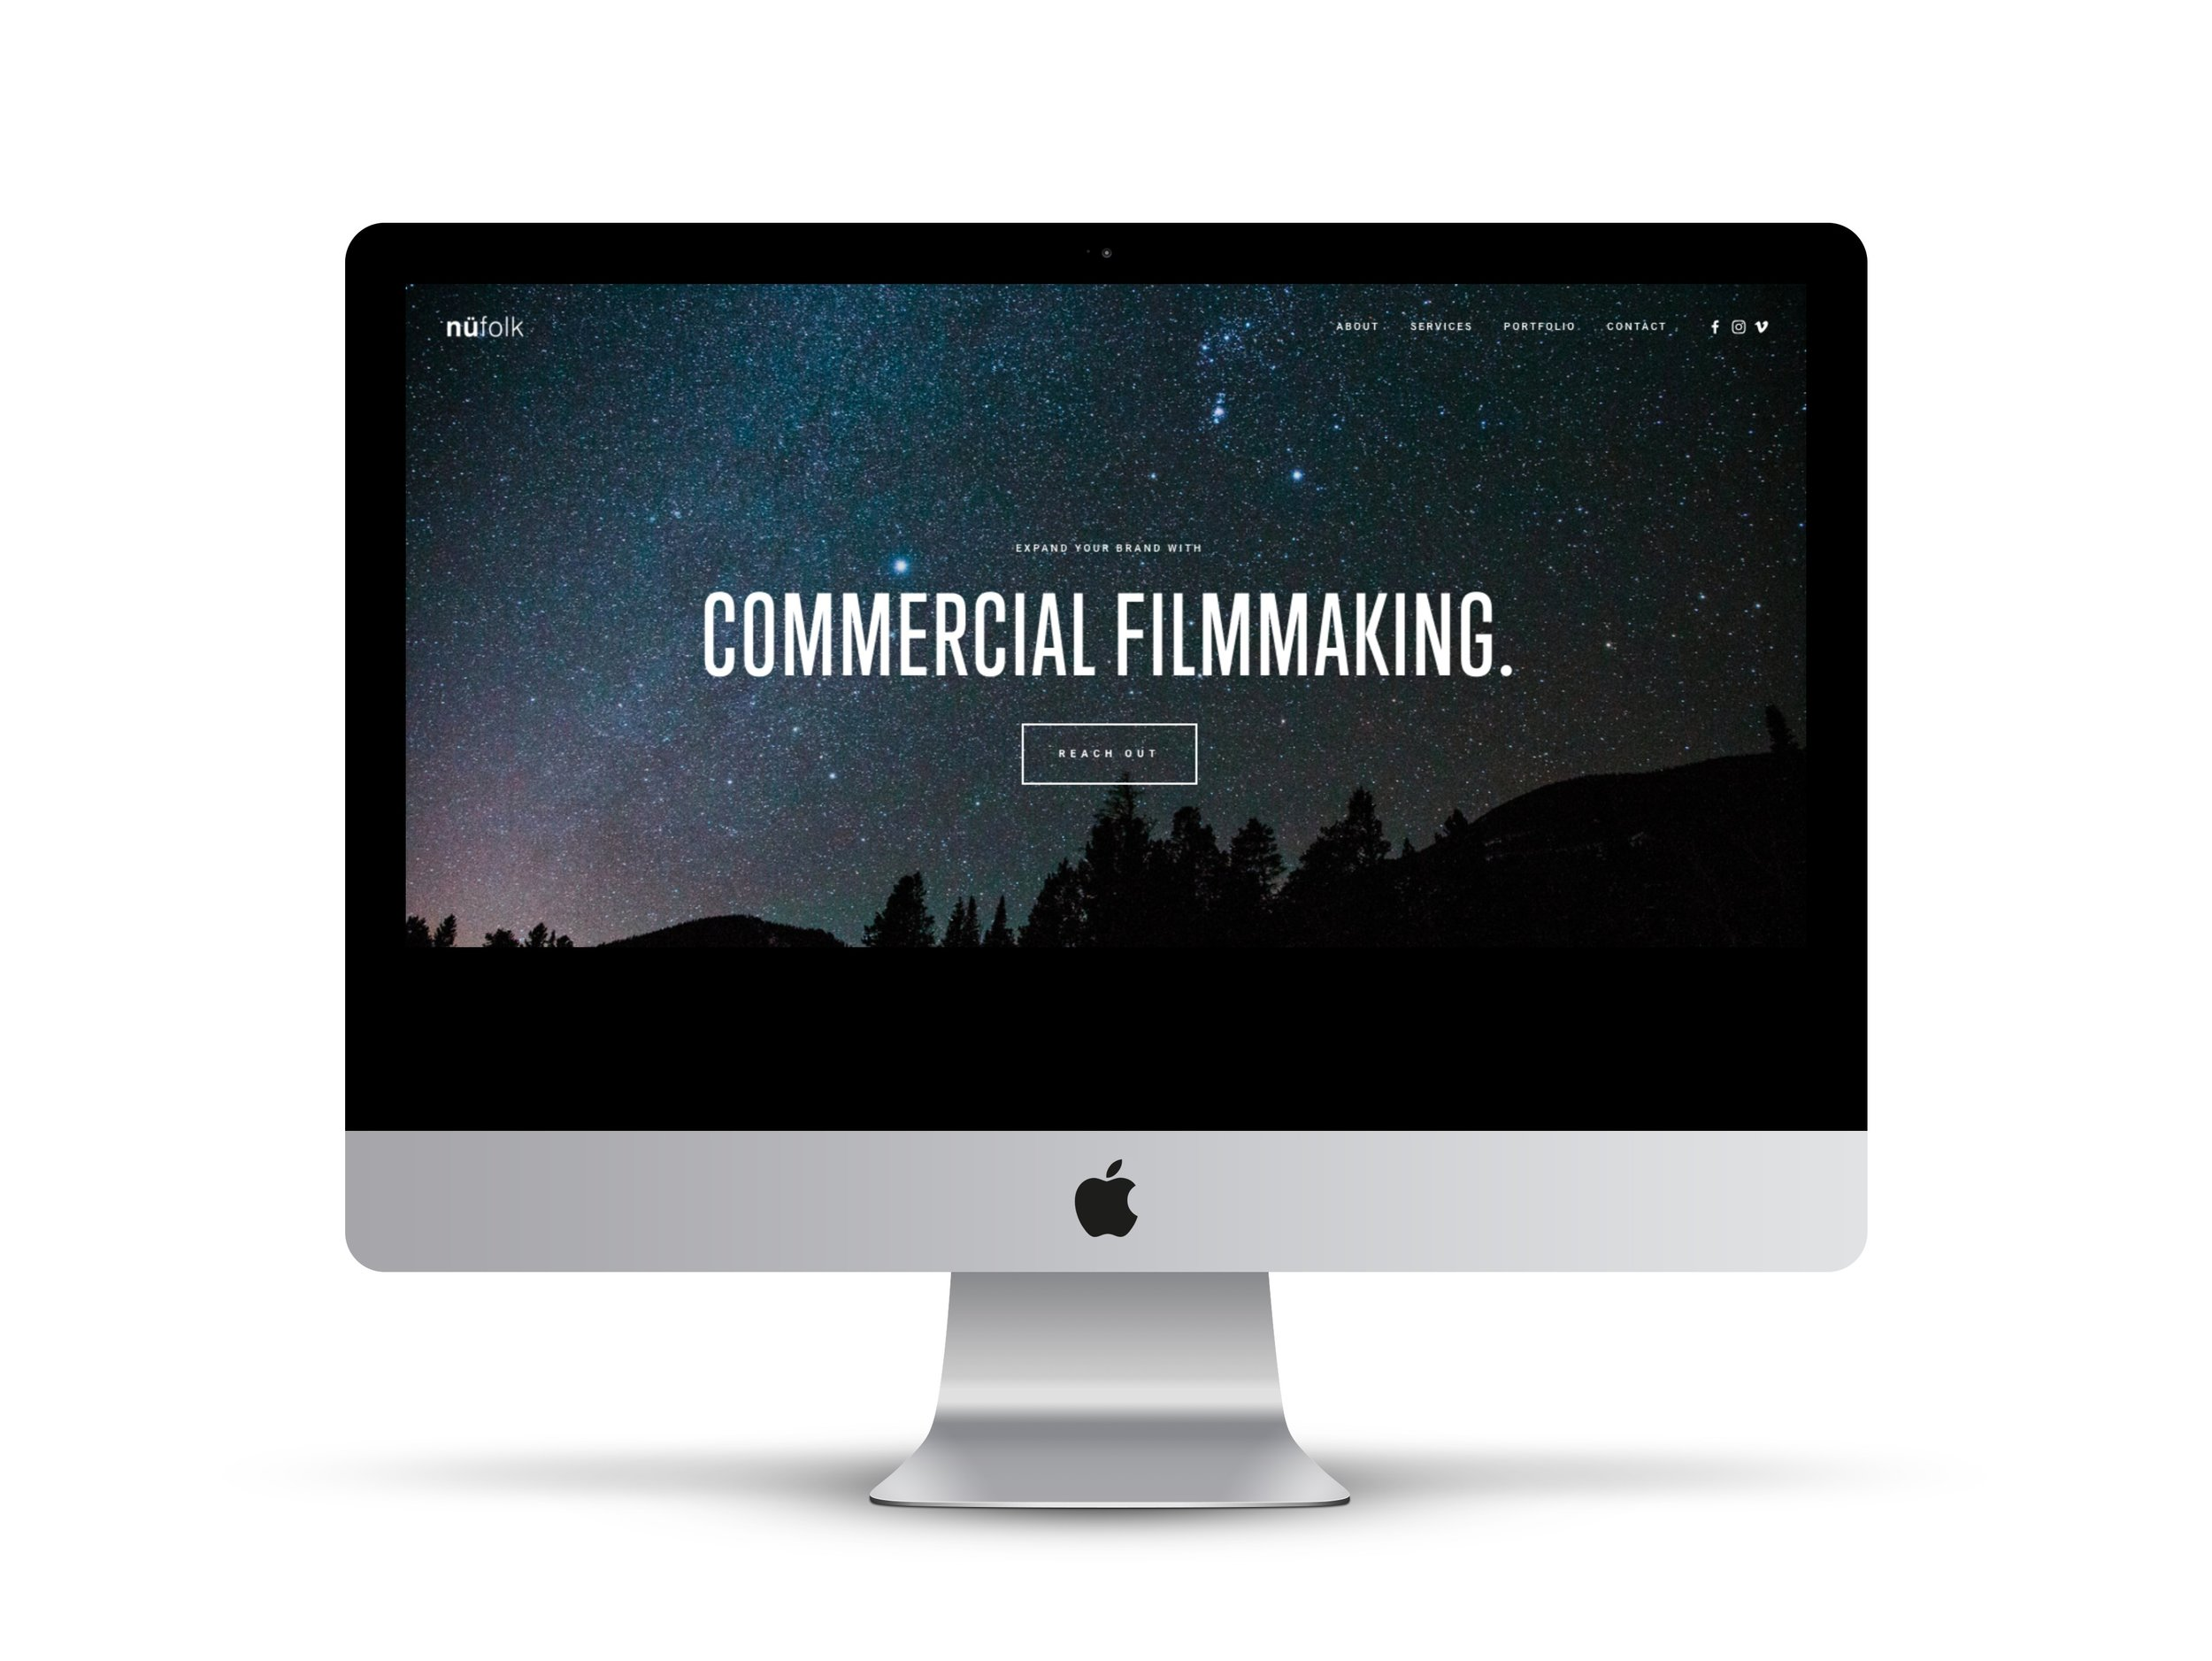 Max Pete provided Squarespace website design and development for nufolk.